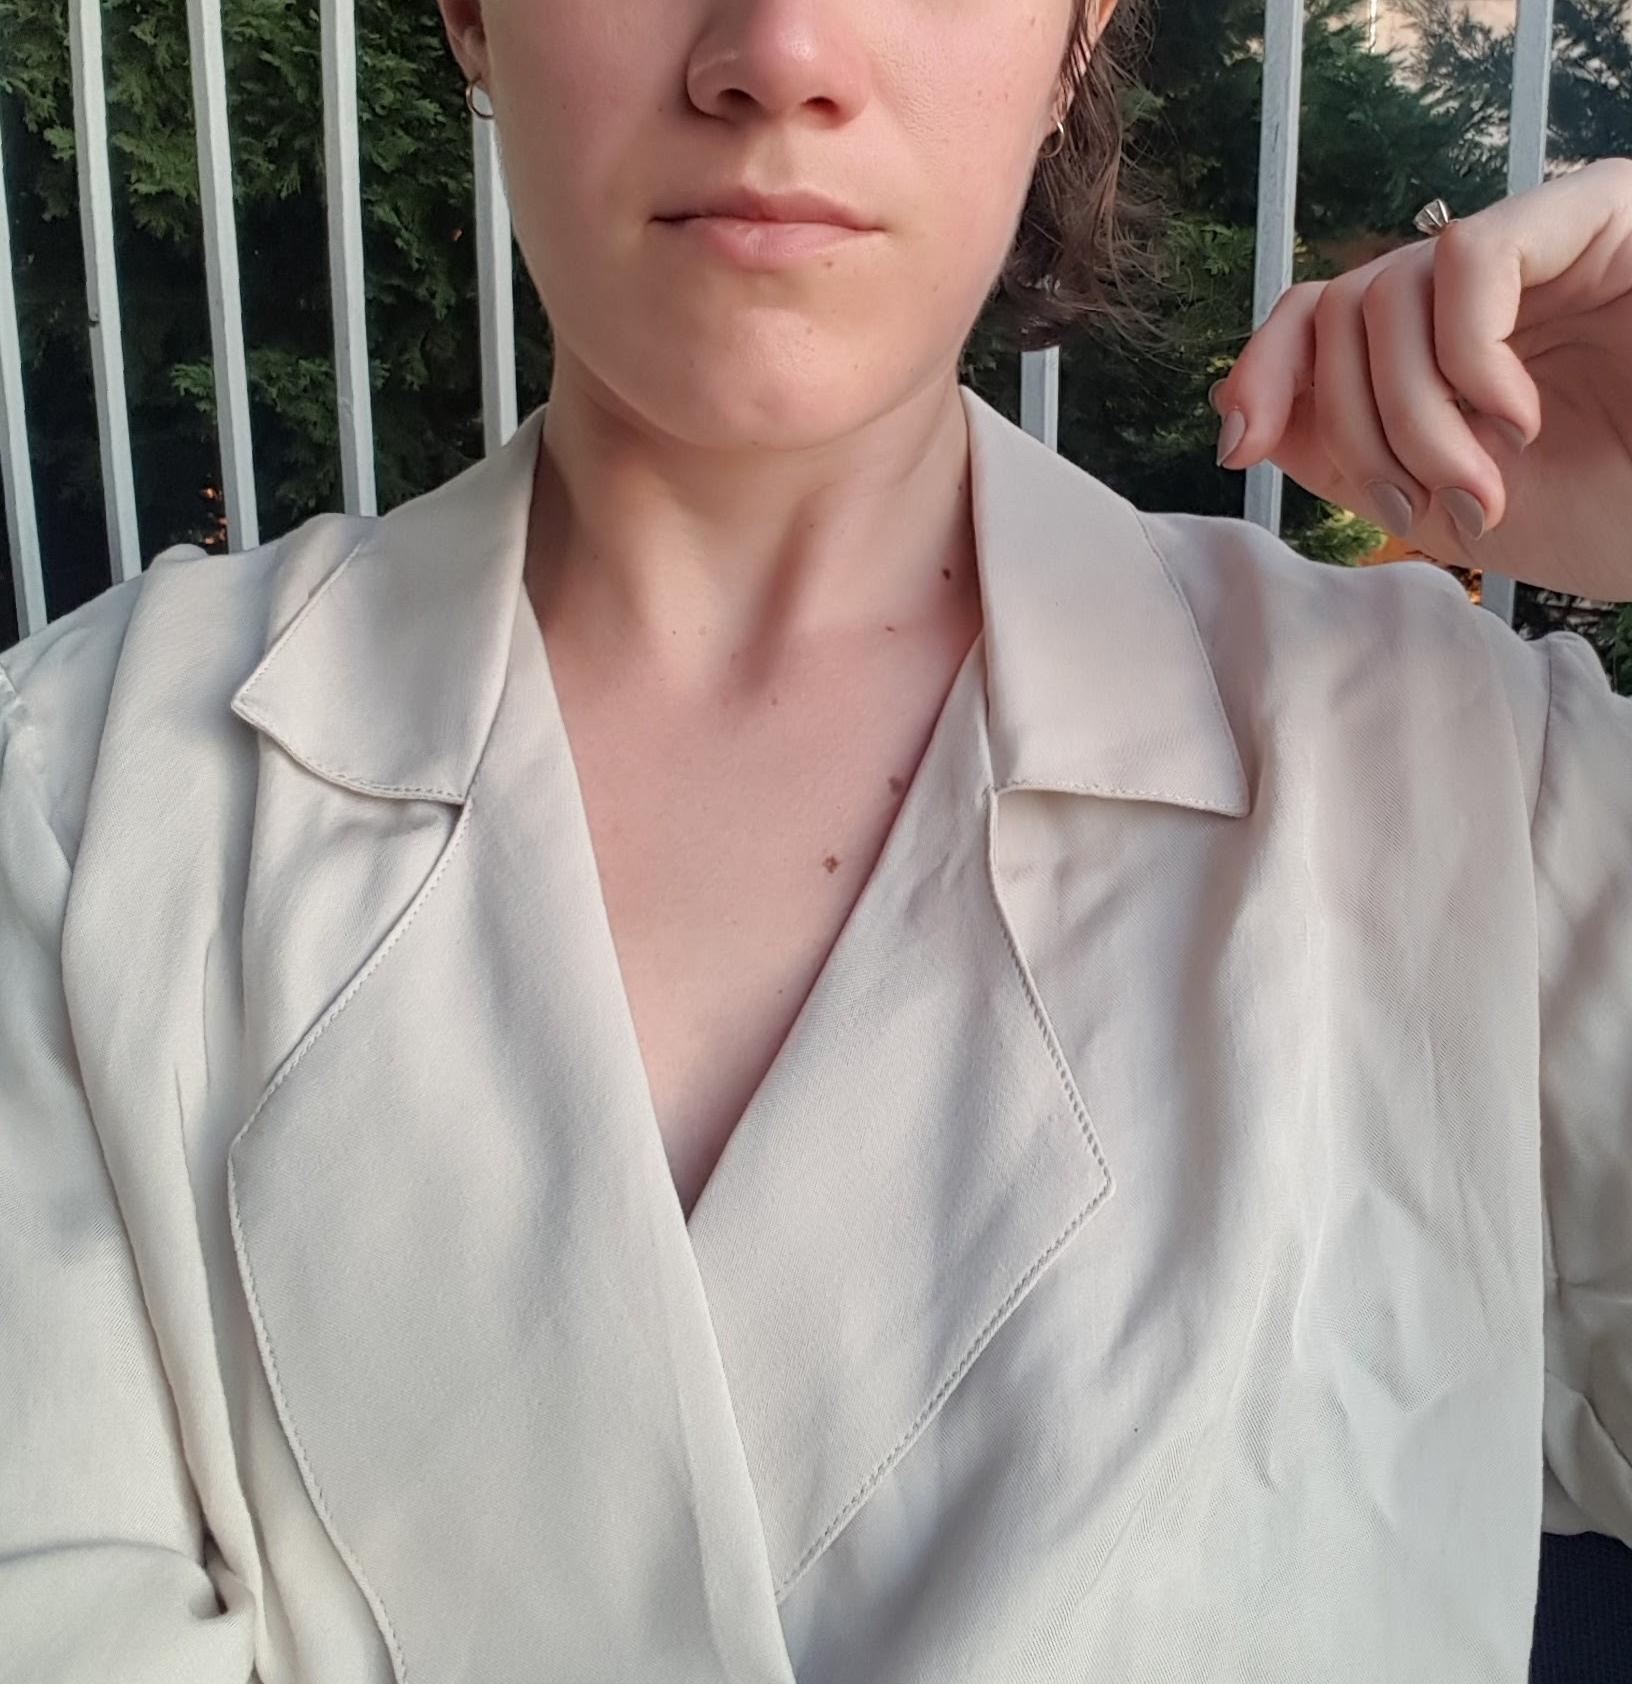 How do you talk about brand name things without talking about brand name things? - This shirt is the Newton blouse by Jesse Kamm, in case you were wondering #whoiamwearing, lol.